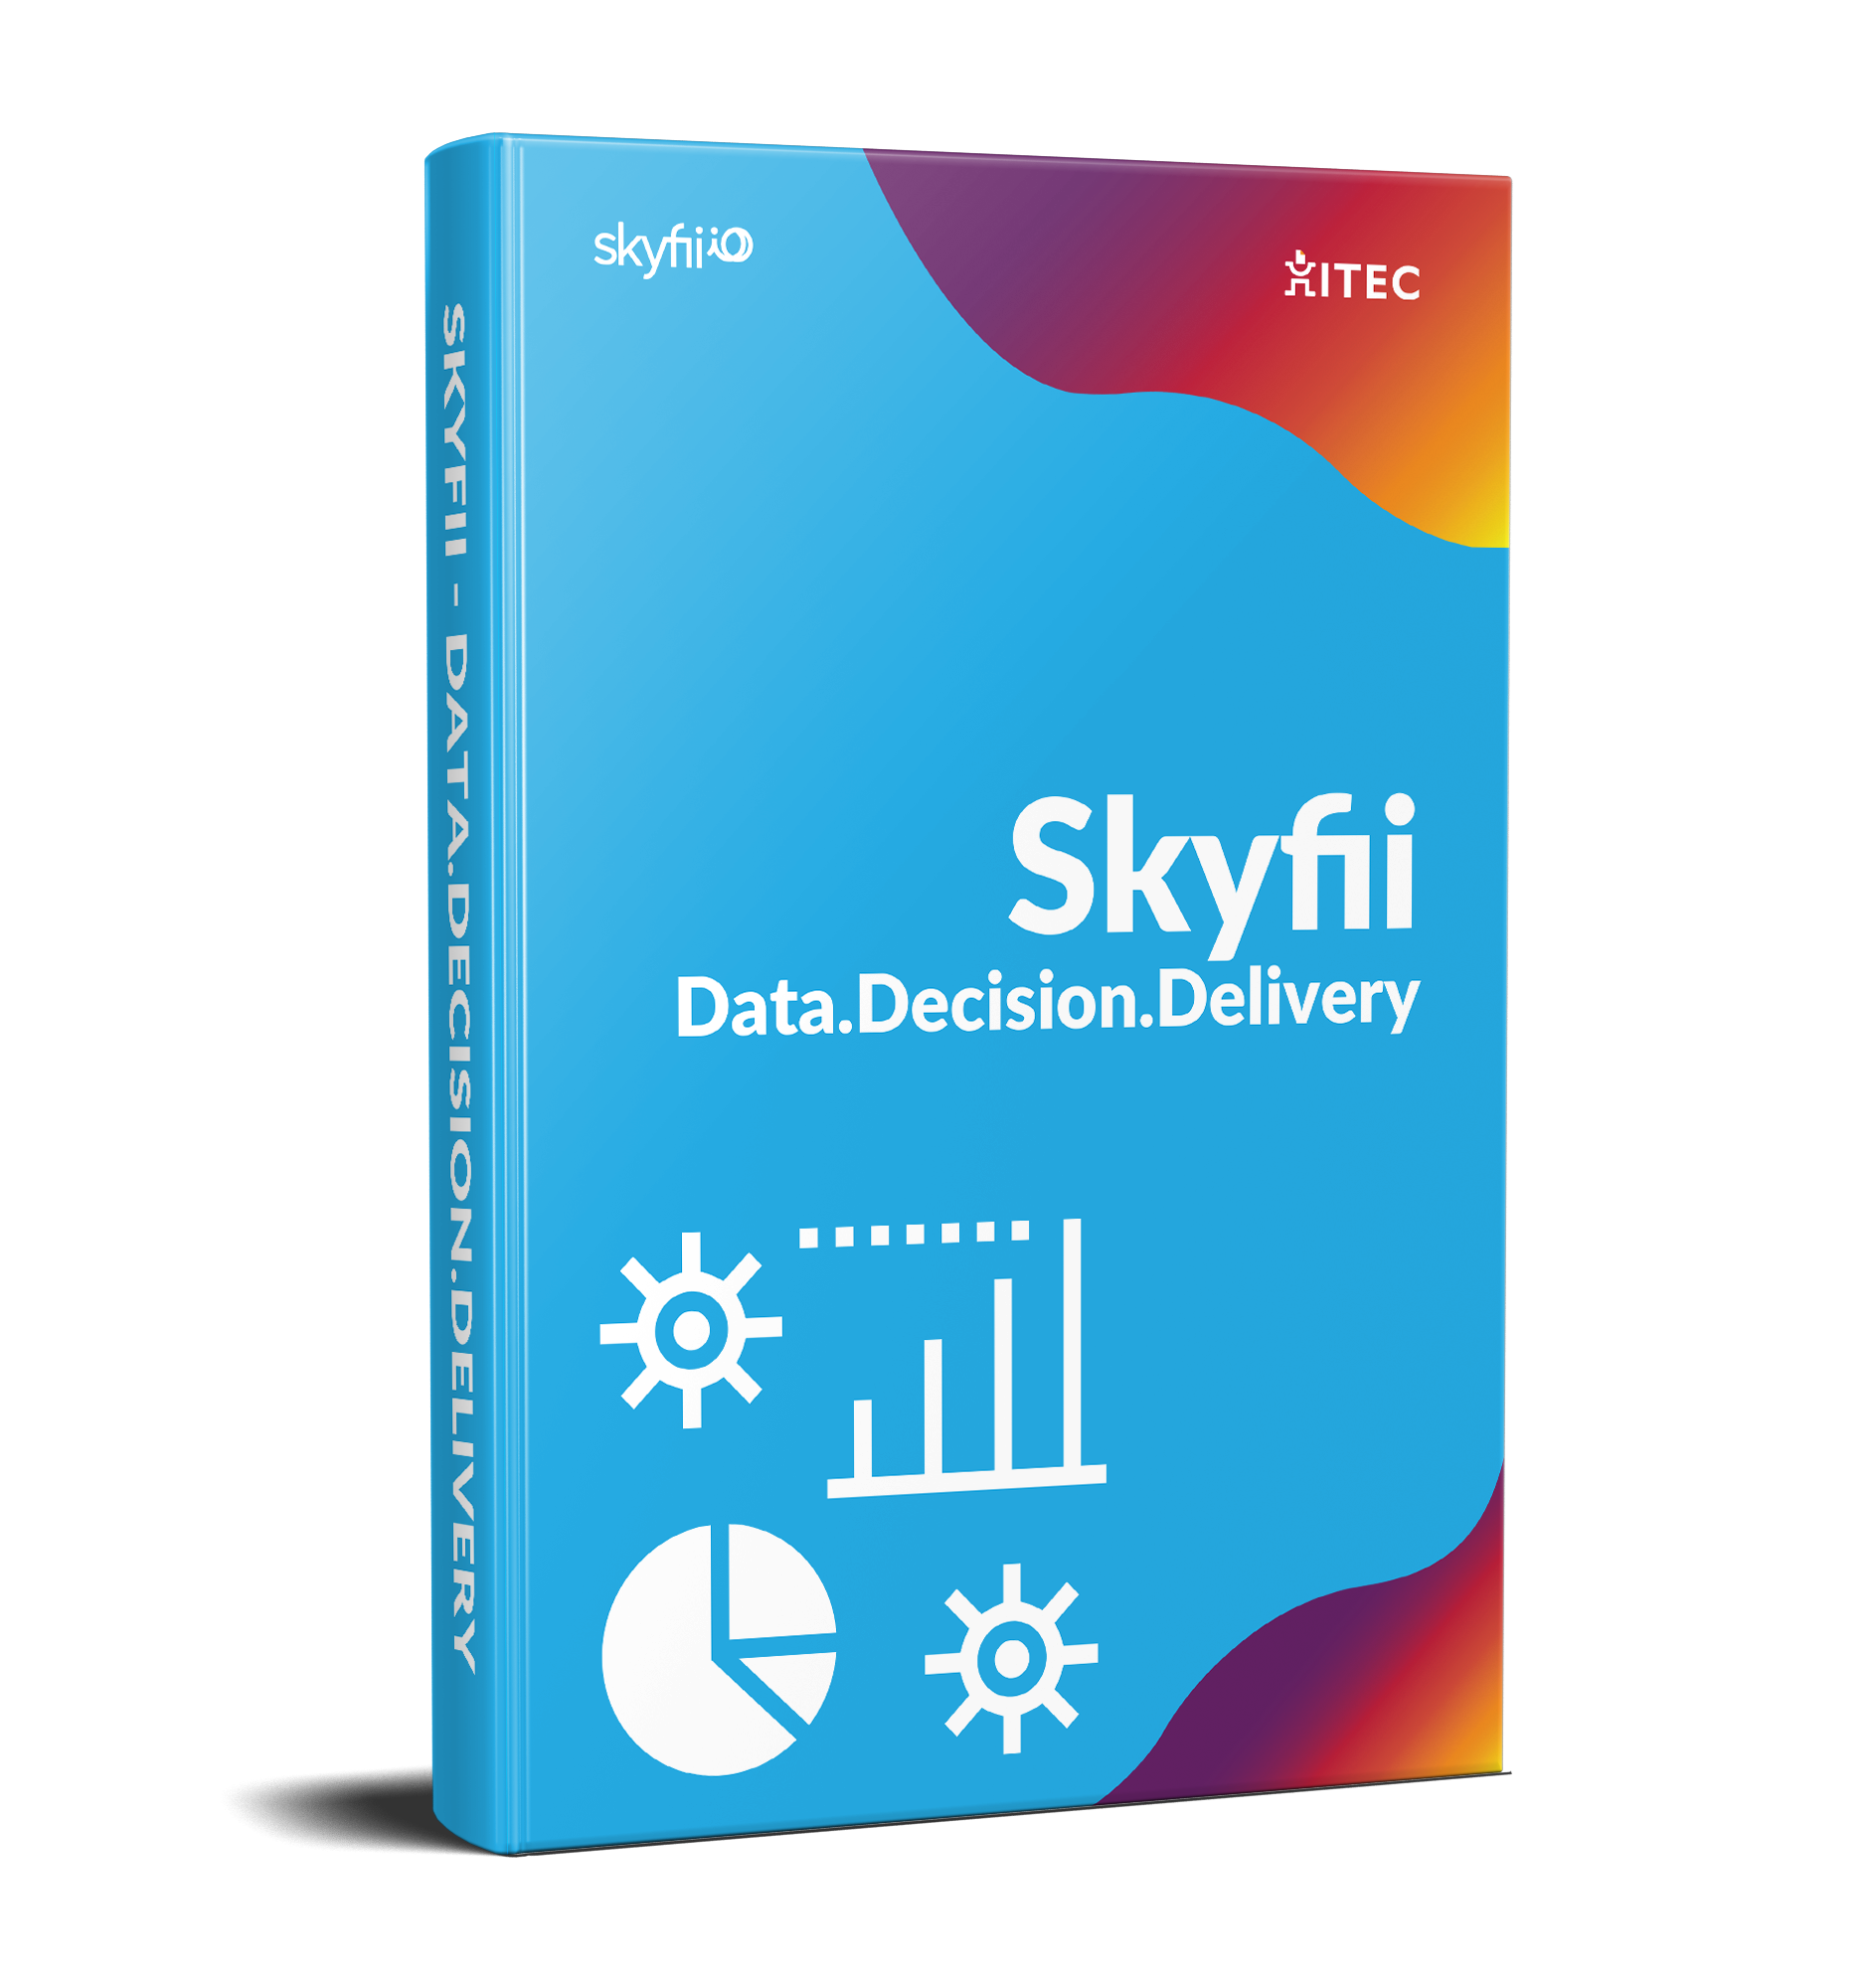 Skyfii_-_Data.Decision.Delivery